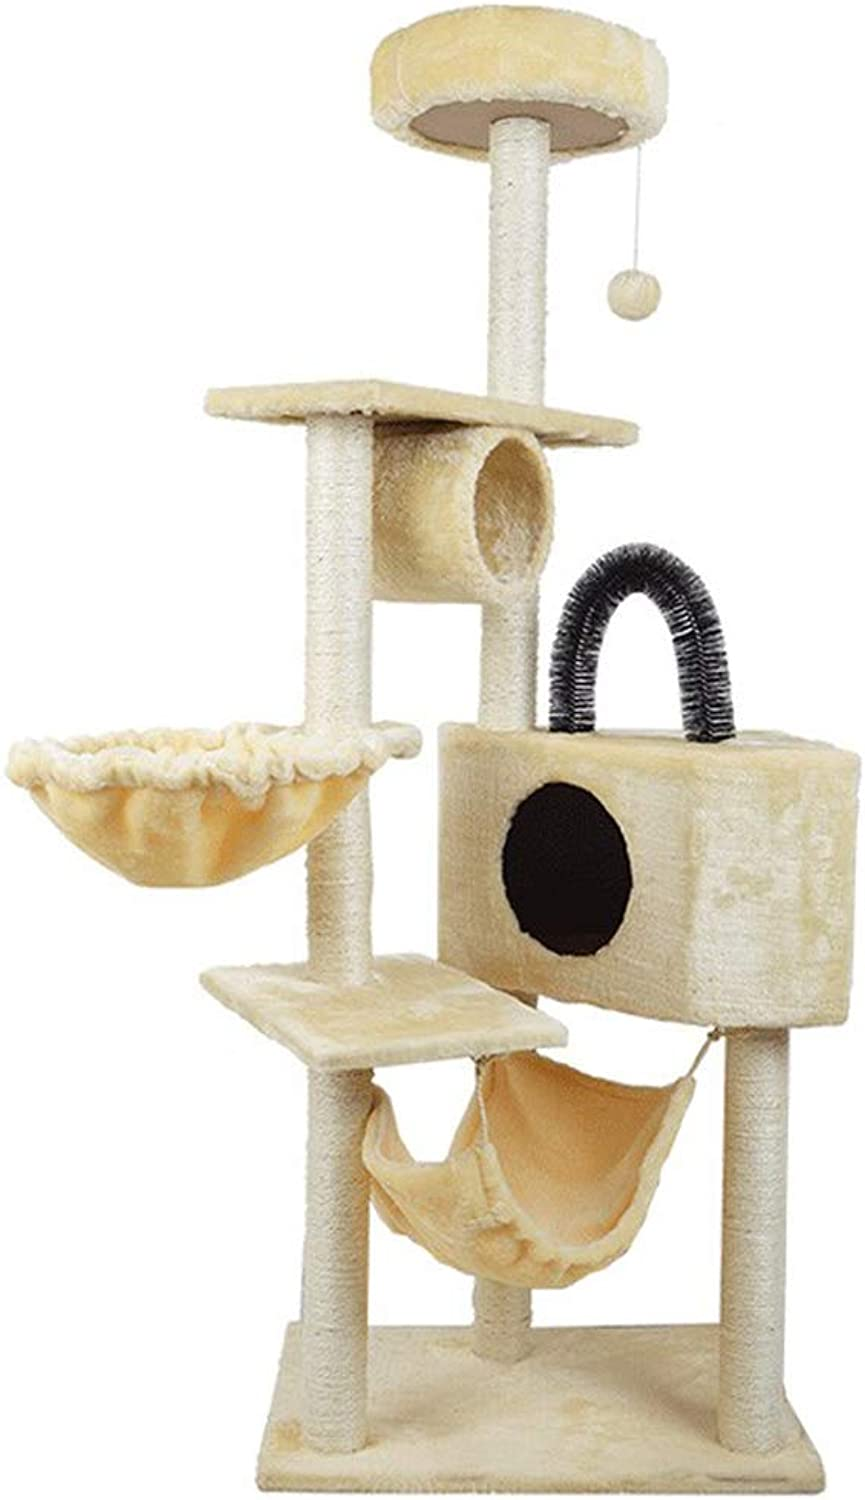 NYDZDM Cat Tree Toy House with Hanging Ball Kitten Furniture Scratchers Solid Wood for Cats Climbing Frame Cat Condos